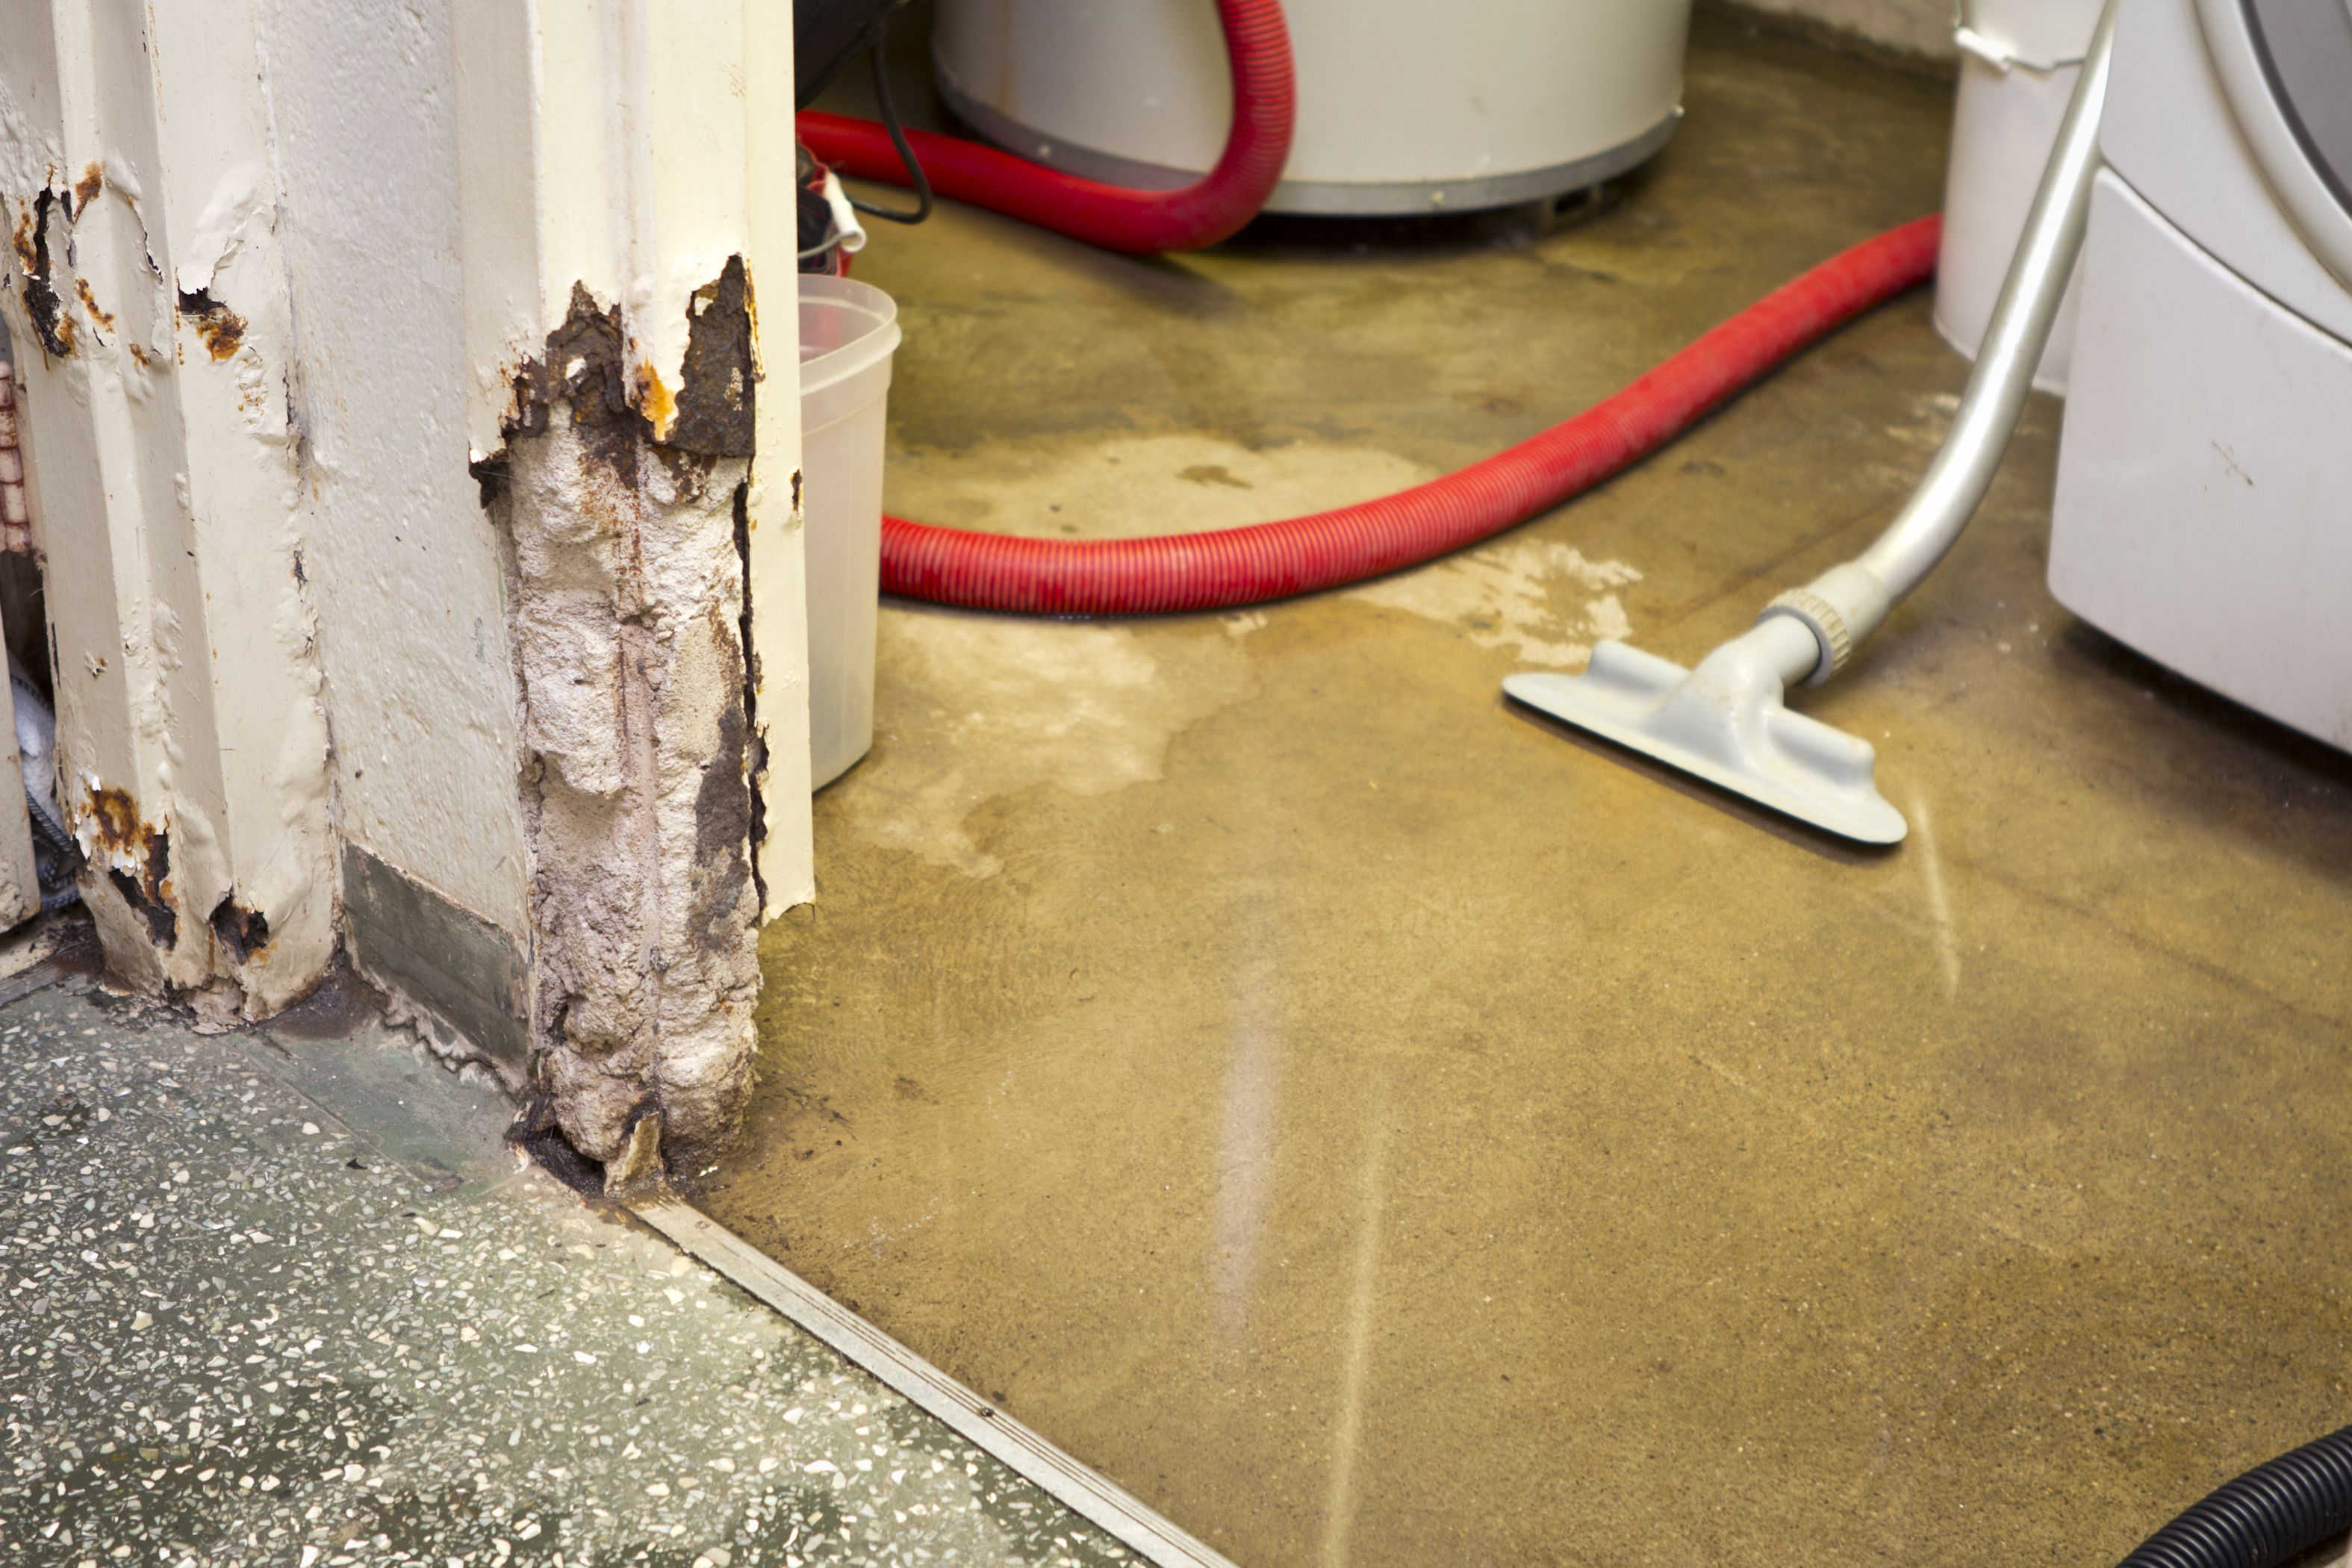 Basement flooring options for wet basements - 5 Steps To Eliminating Or Reducing Moisture In Your Basement